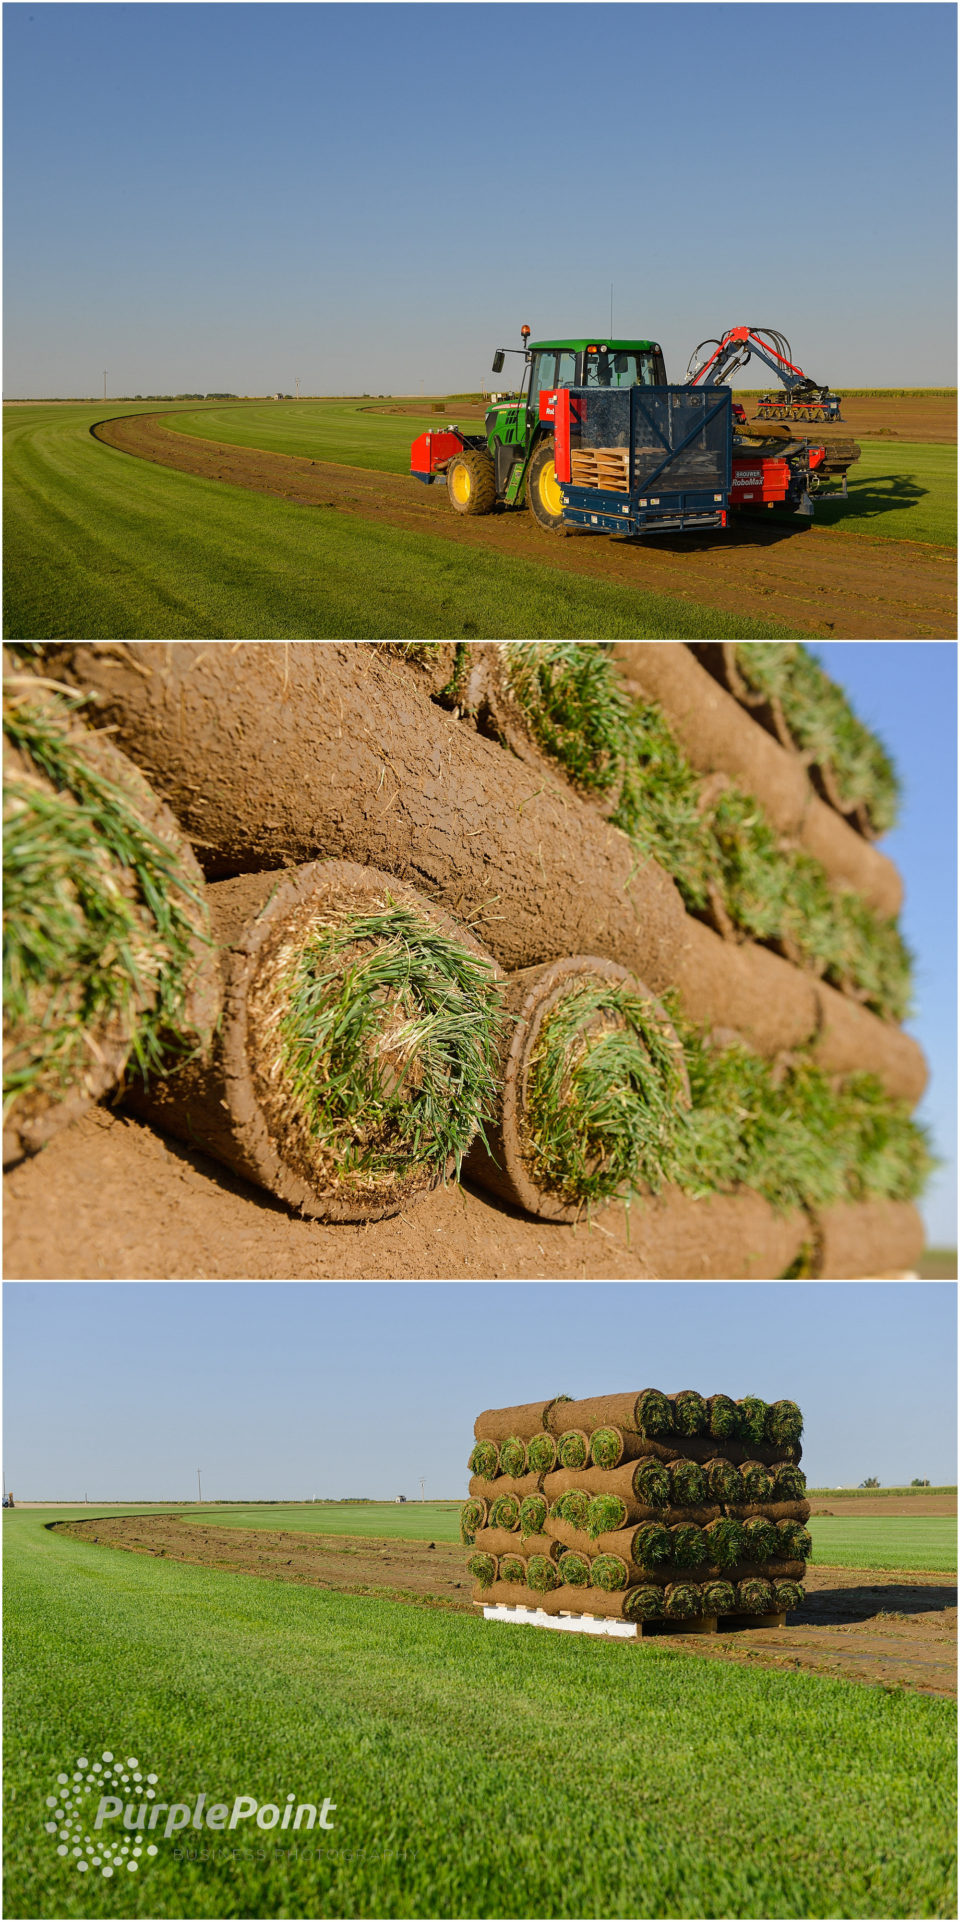 scienturfic_sod_farm_marketing_photos-1